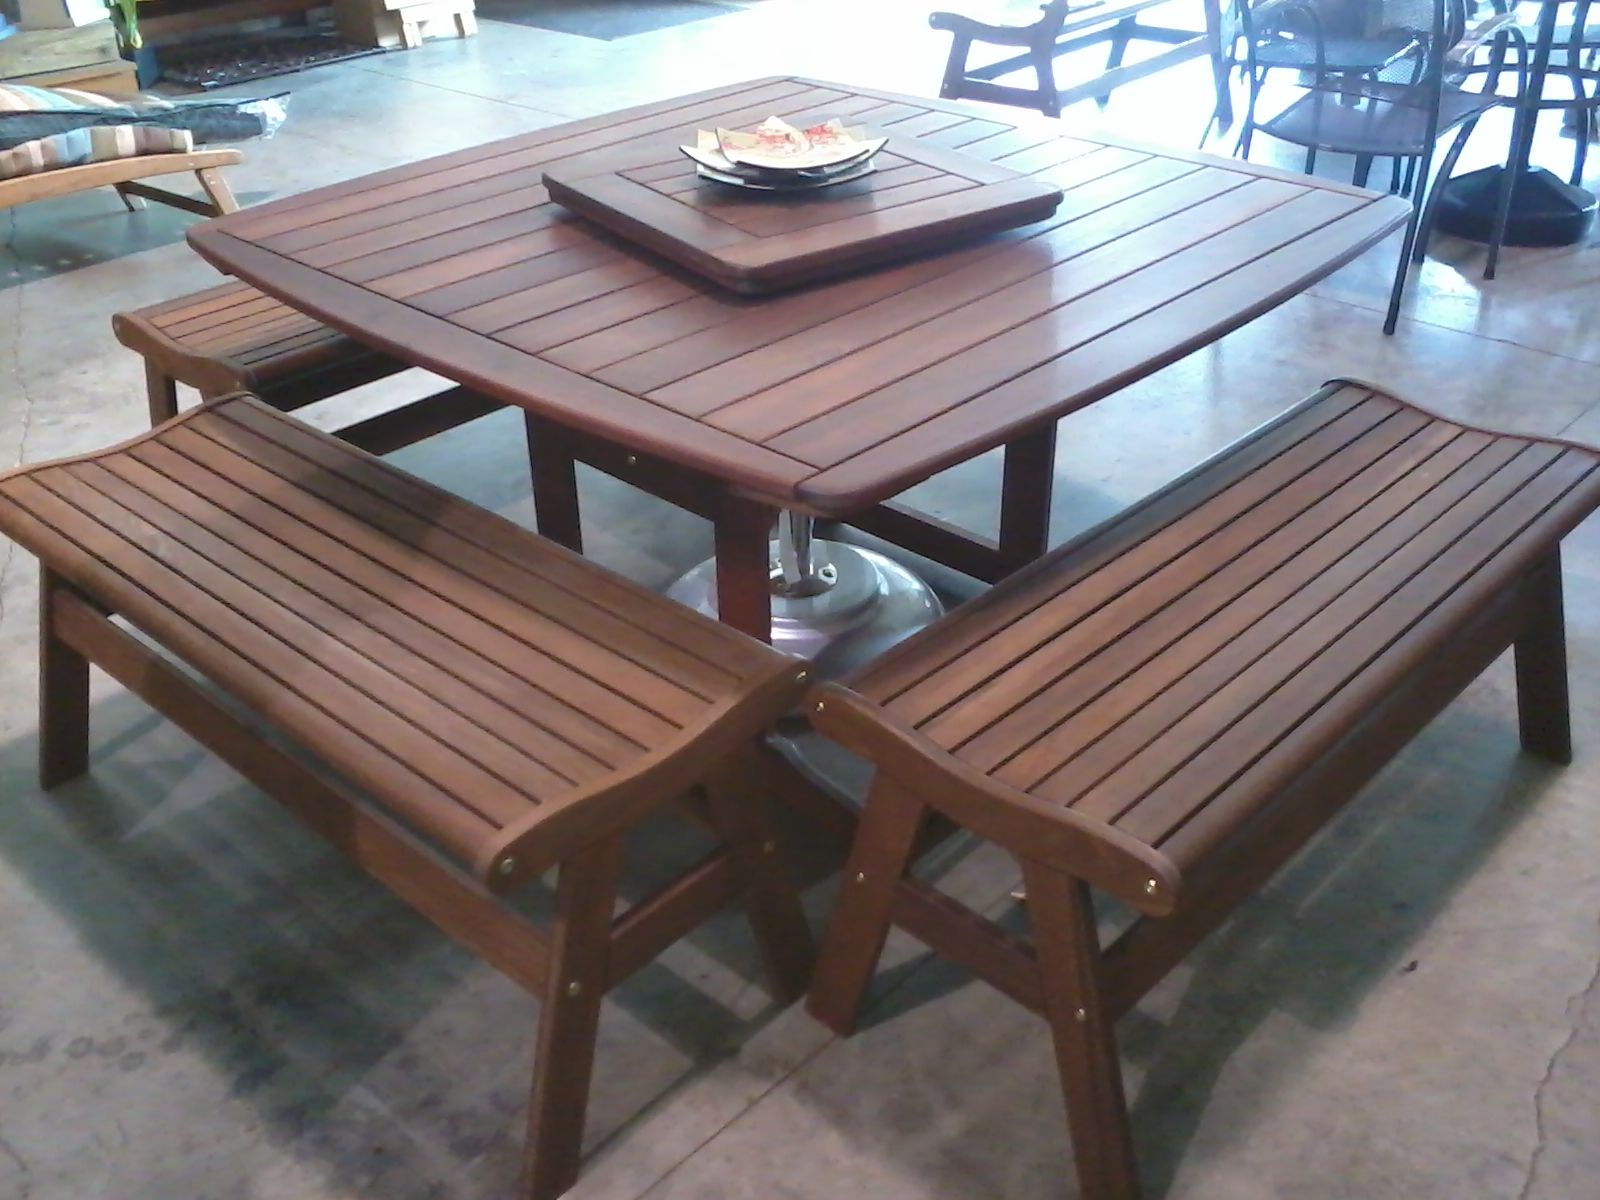 Jensen Jarrah Vasse Table With 4 Ipe Benches Wood Work